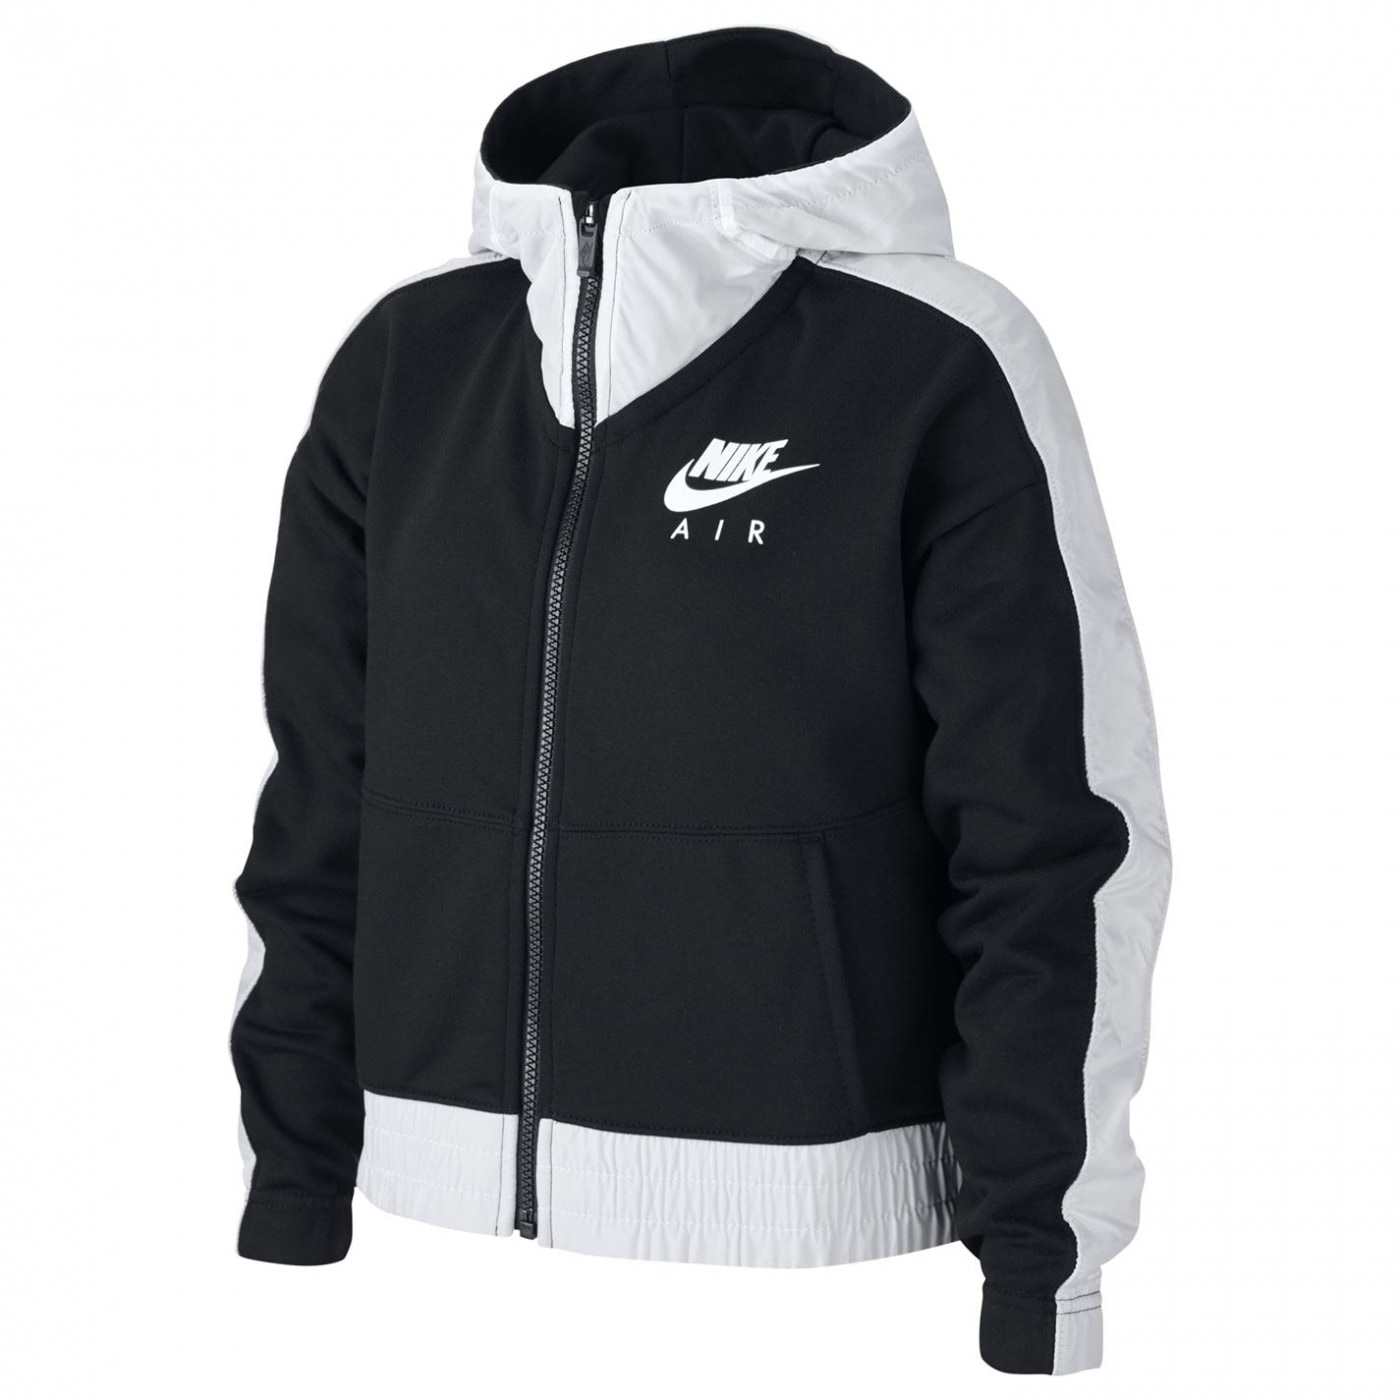 Nike Air Big Kids Full-Zip Hoodie